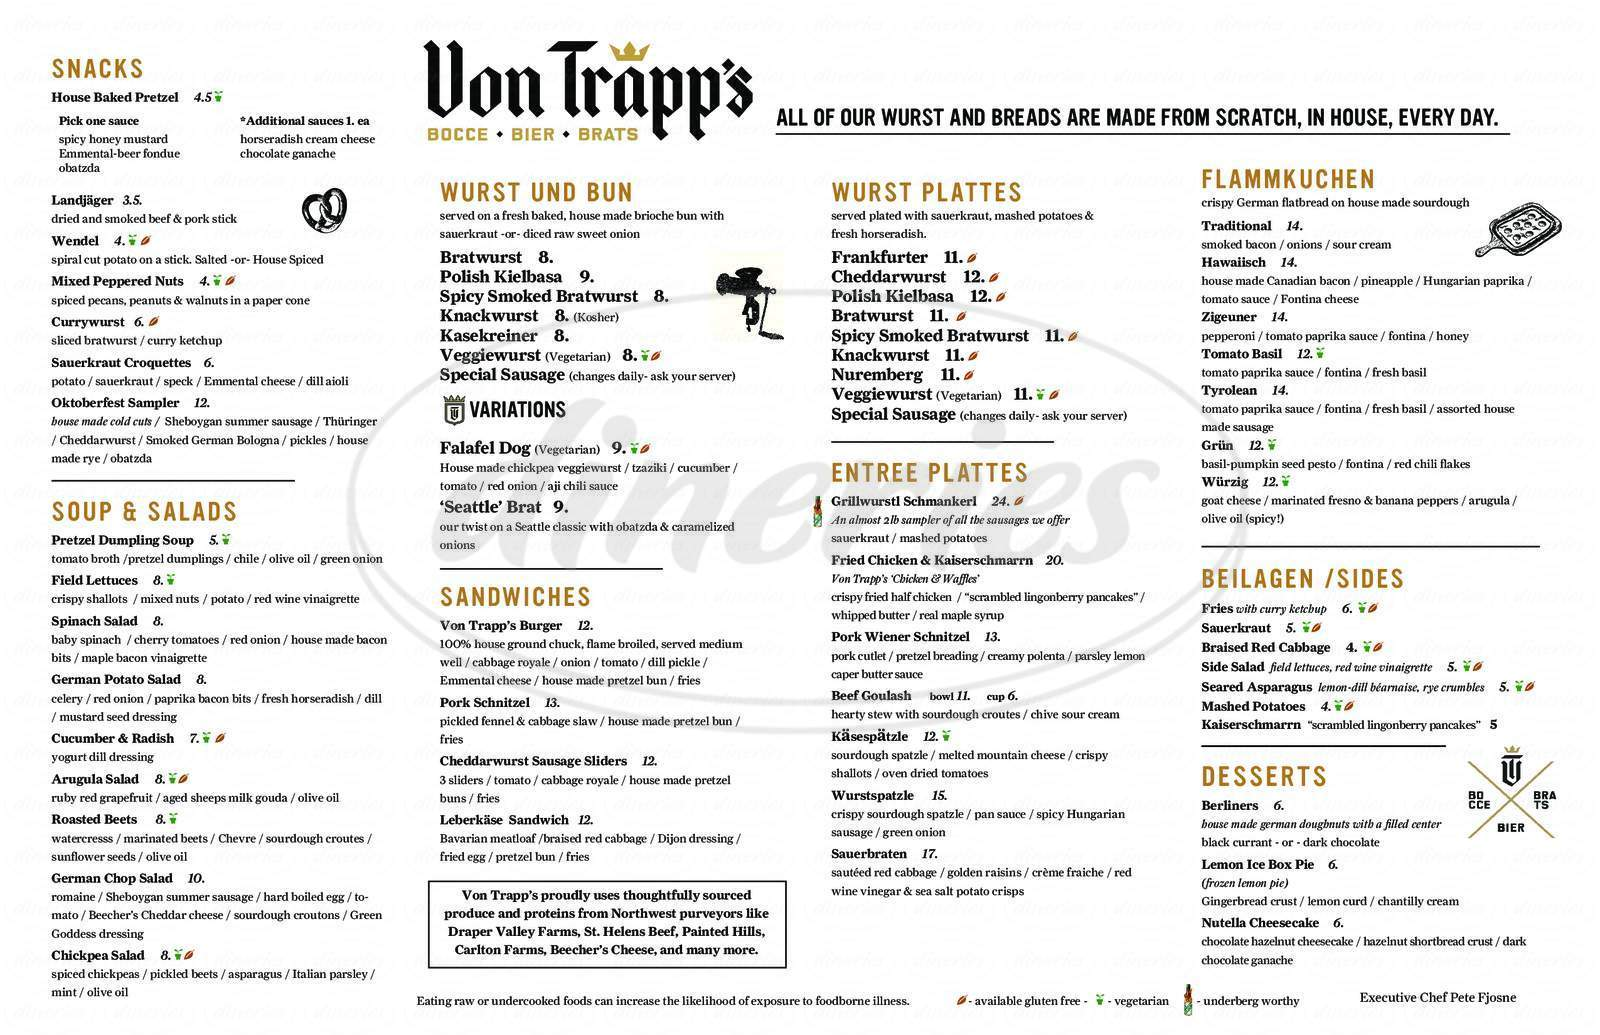 menu for Von Trapp's